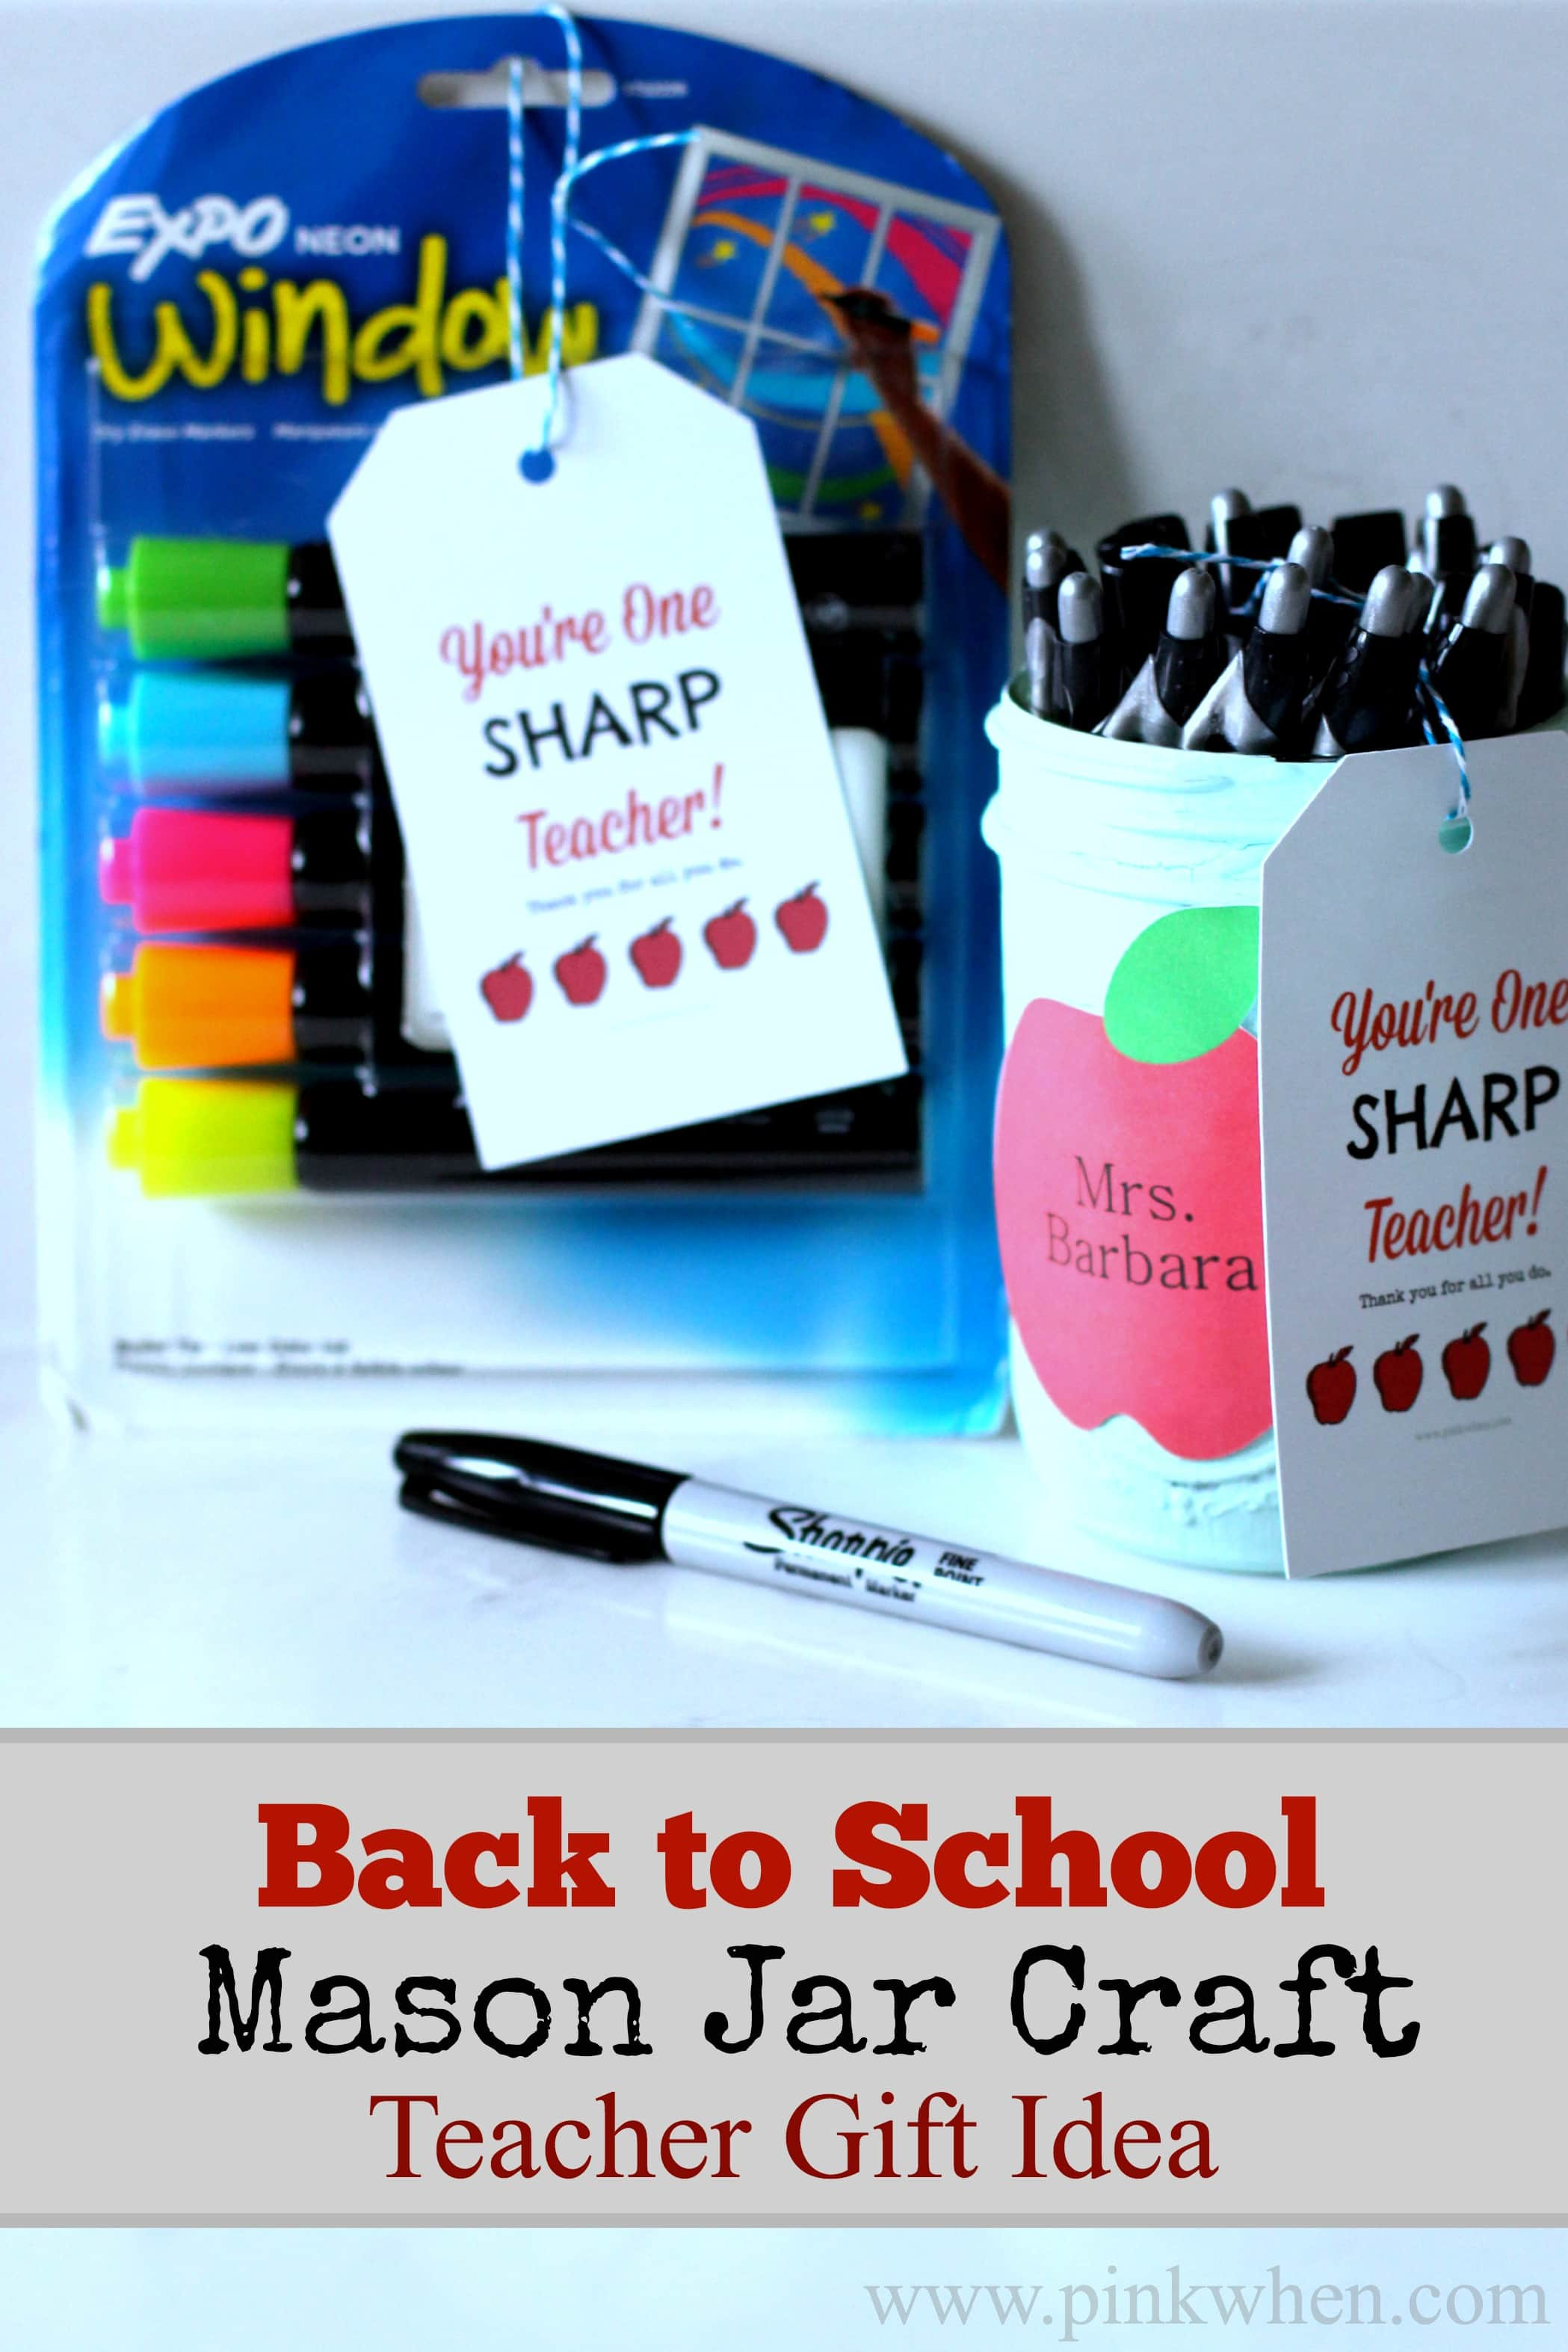 Back to School Mason Jar Craft Teacher Gift Idea #inspirestudents #teacherschangelives #pmedia #ad